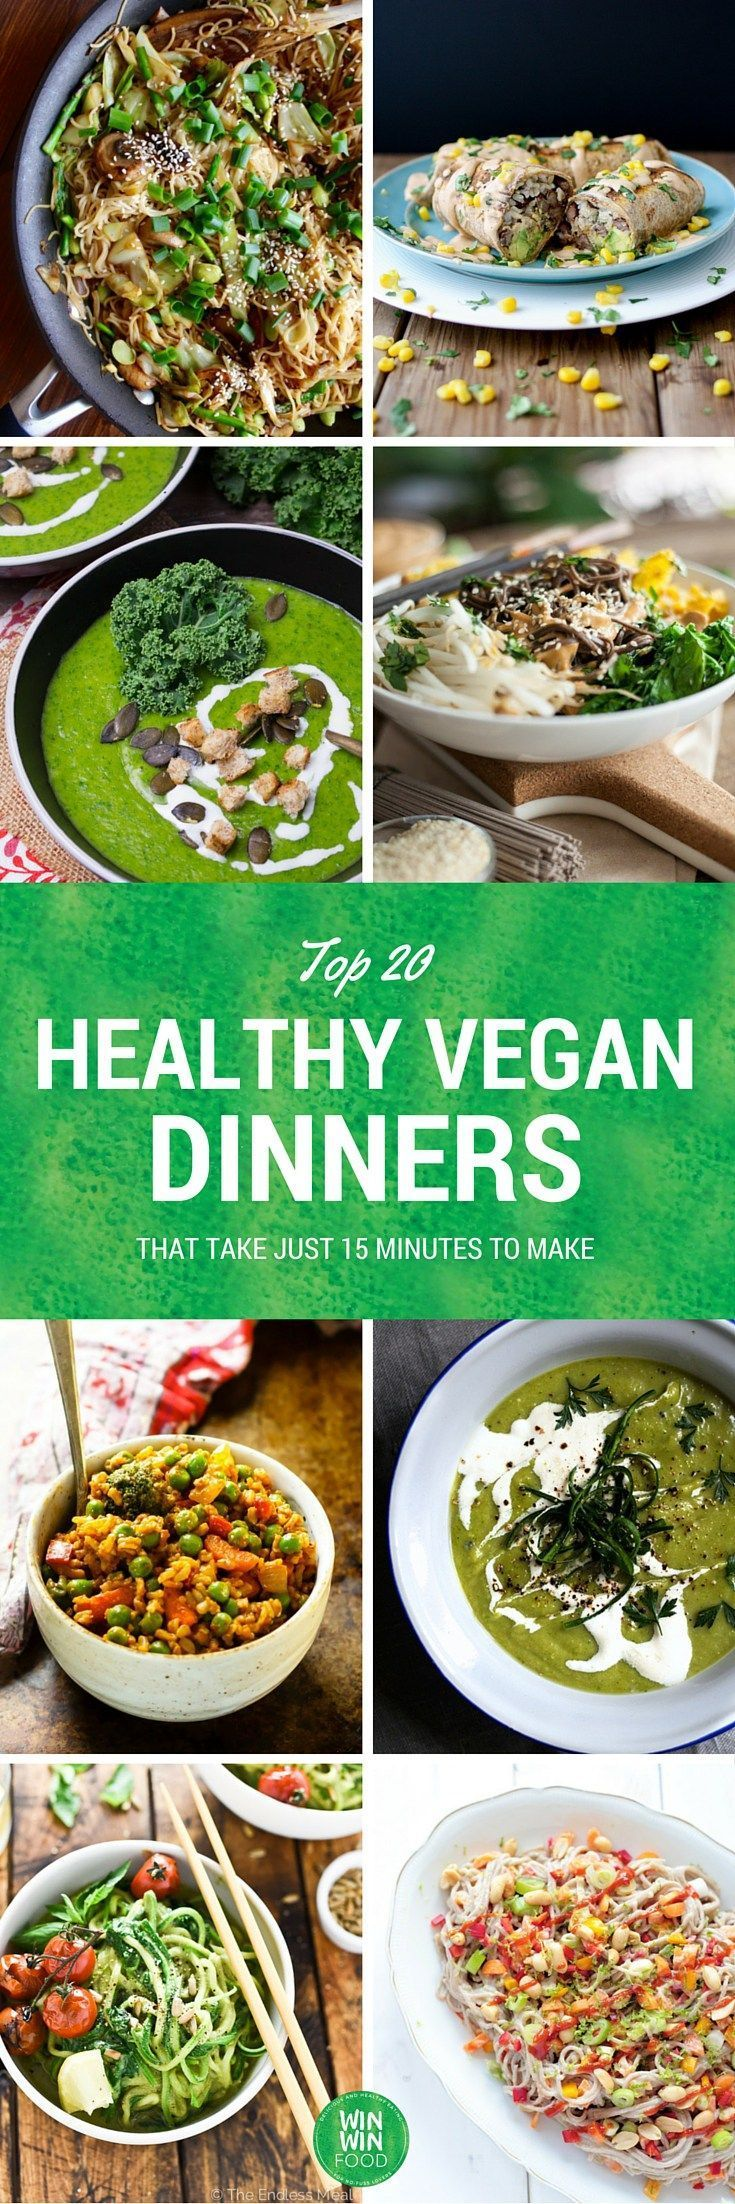 20 Healthy Vegan Dinners That Take Just 15 Minutes to Make | WIN-WINFOOD.com #healthy #vegan